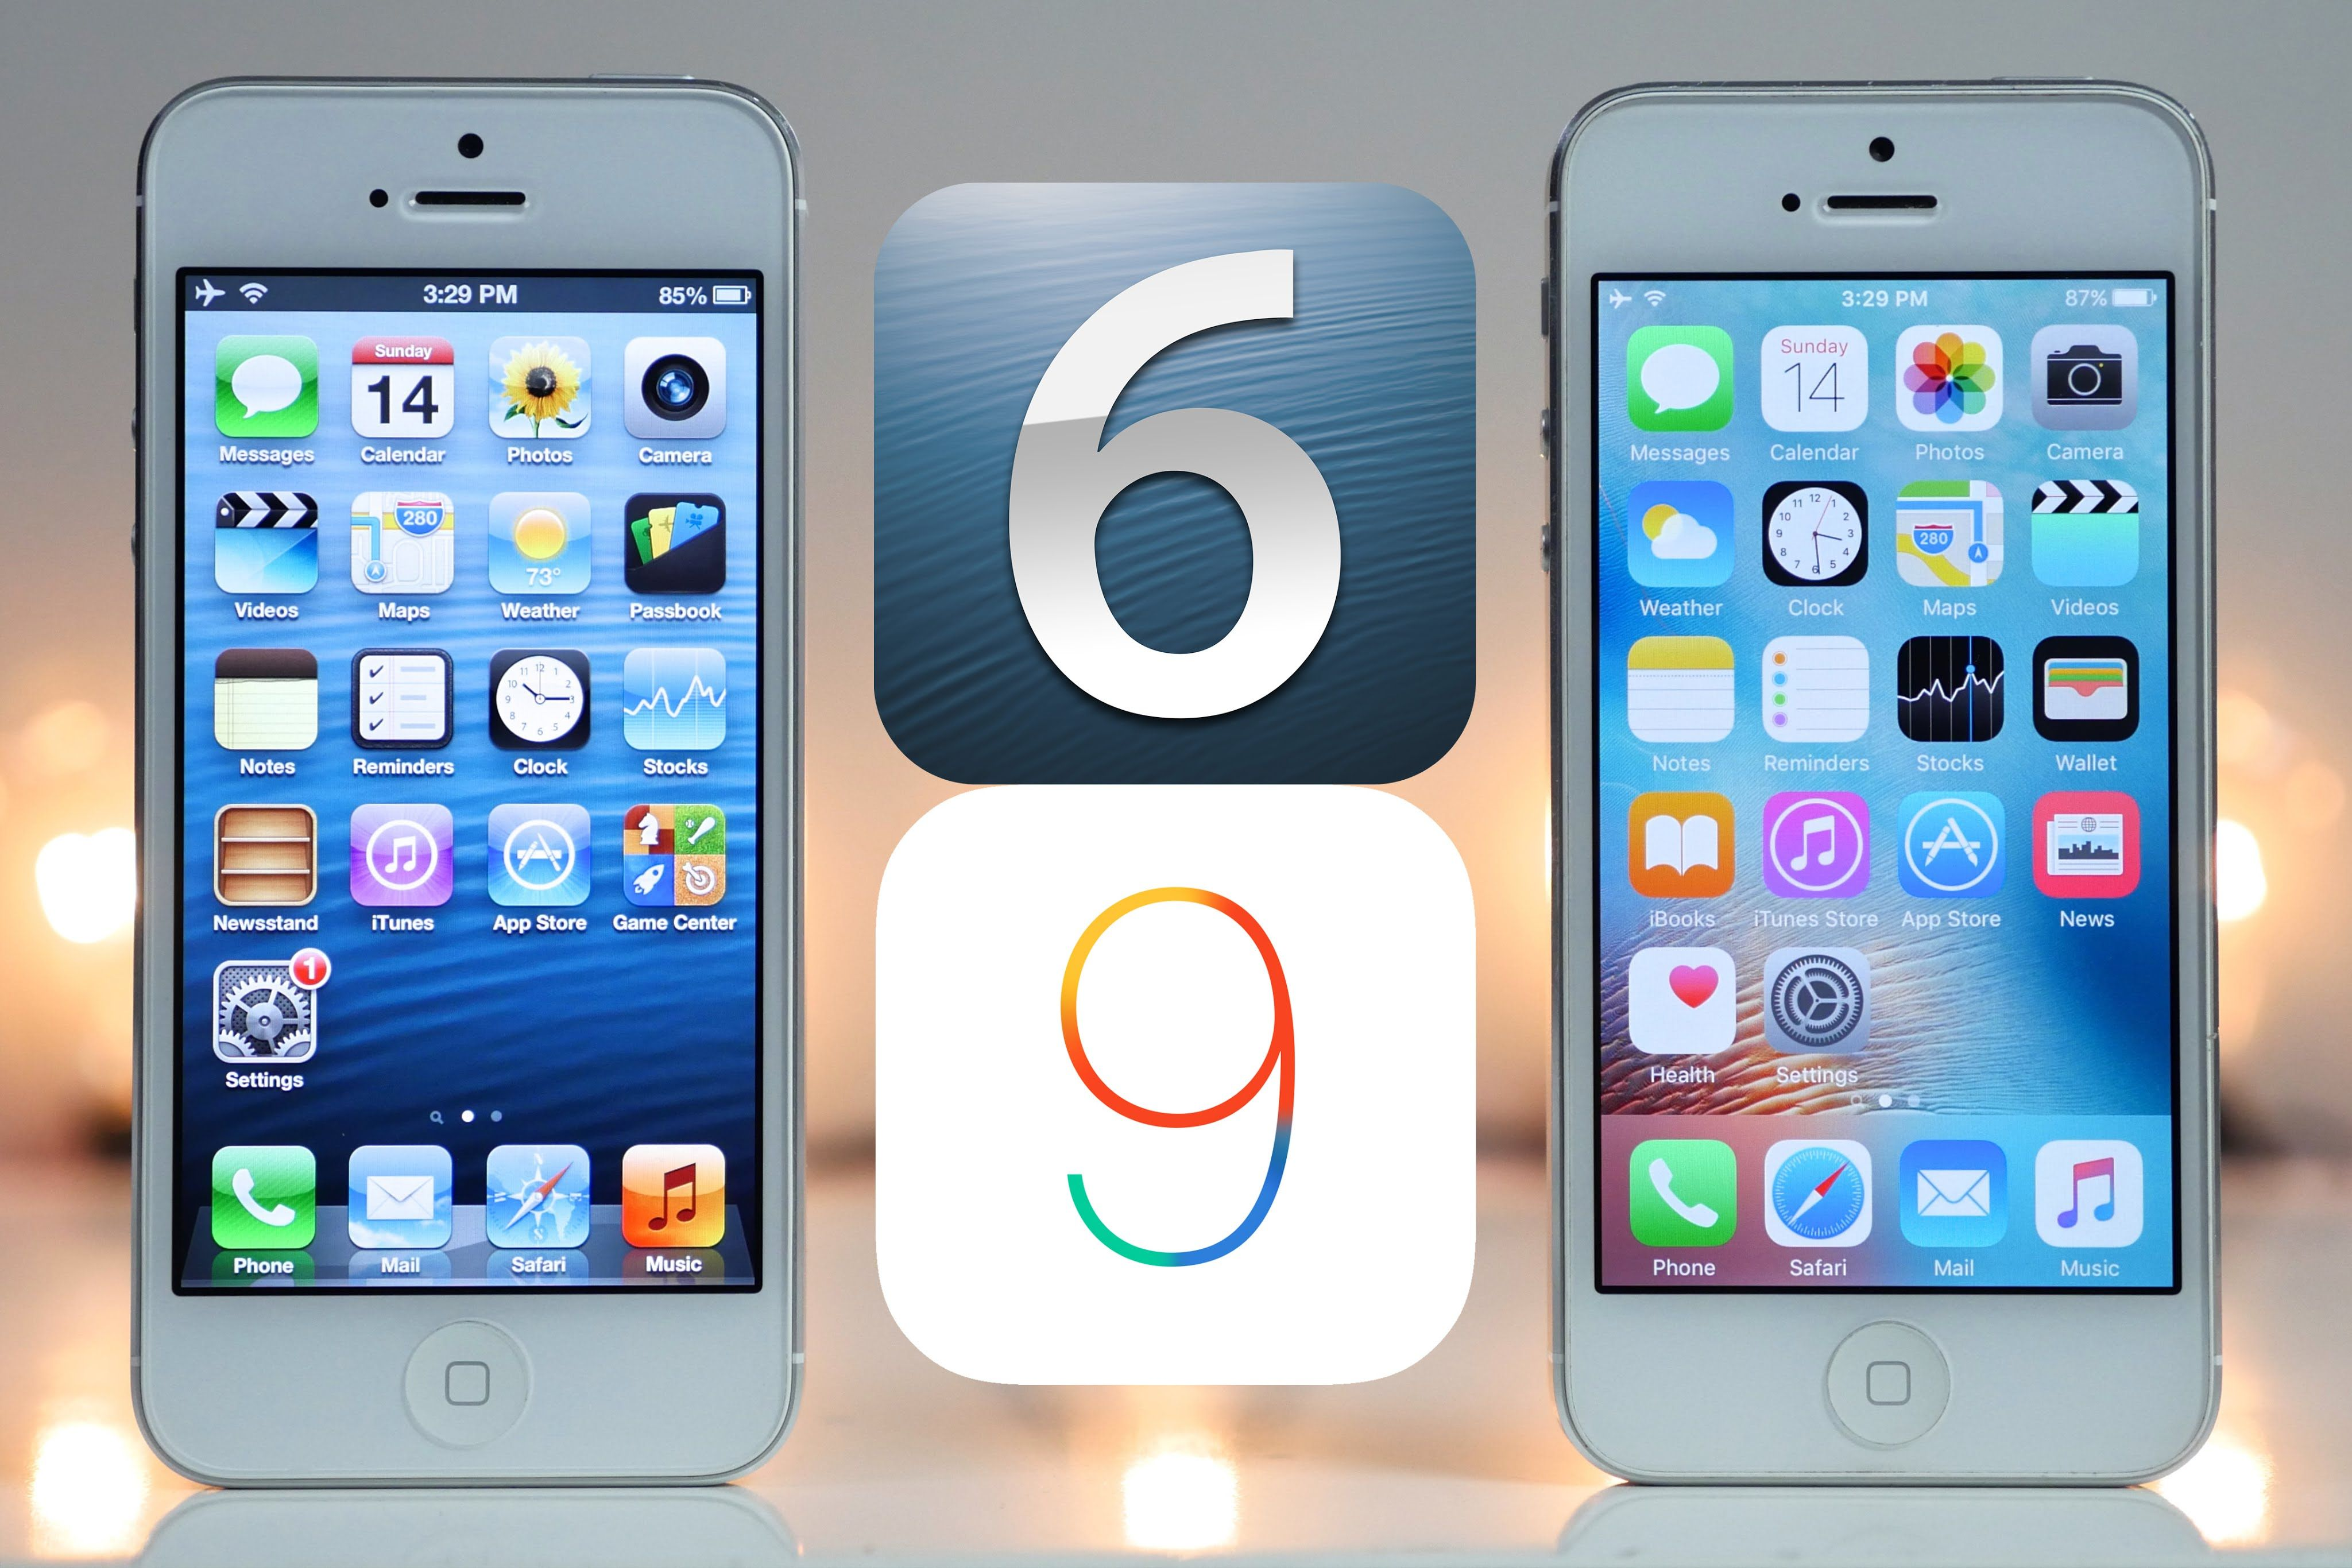 iOS 6 vs iOS 9 Is Planned Obsolescence a Myth? Iphone